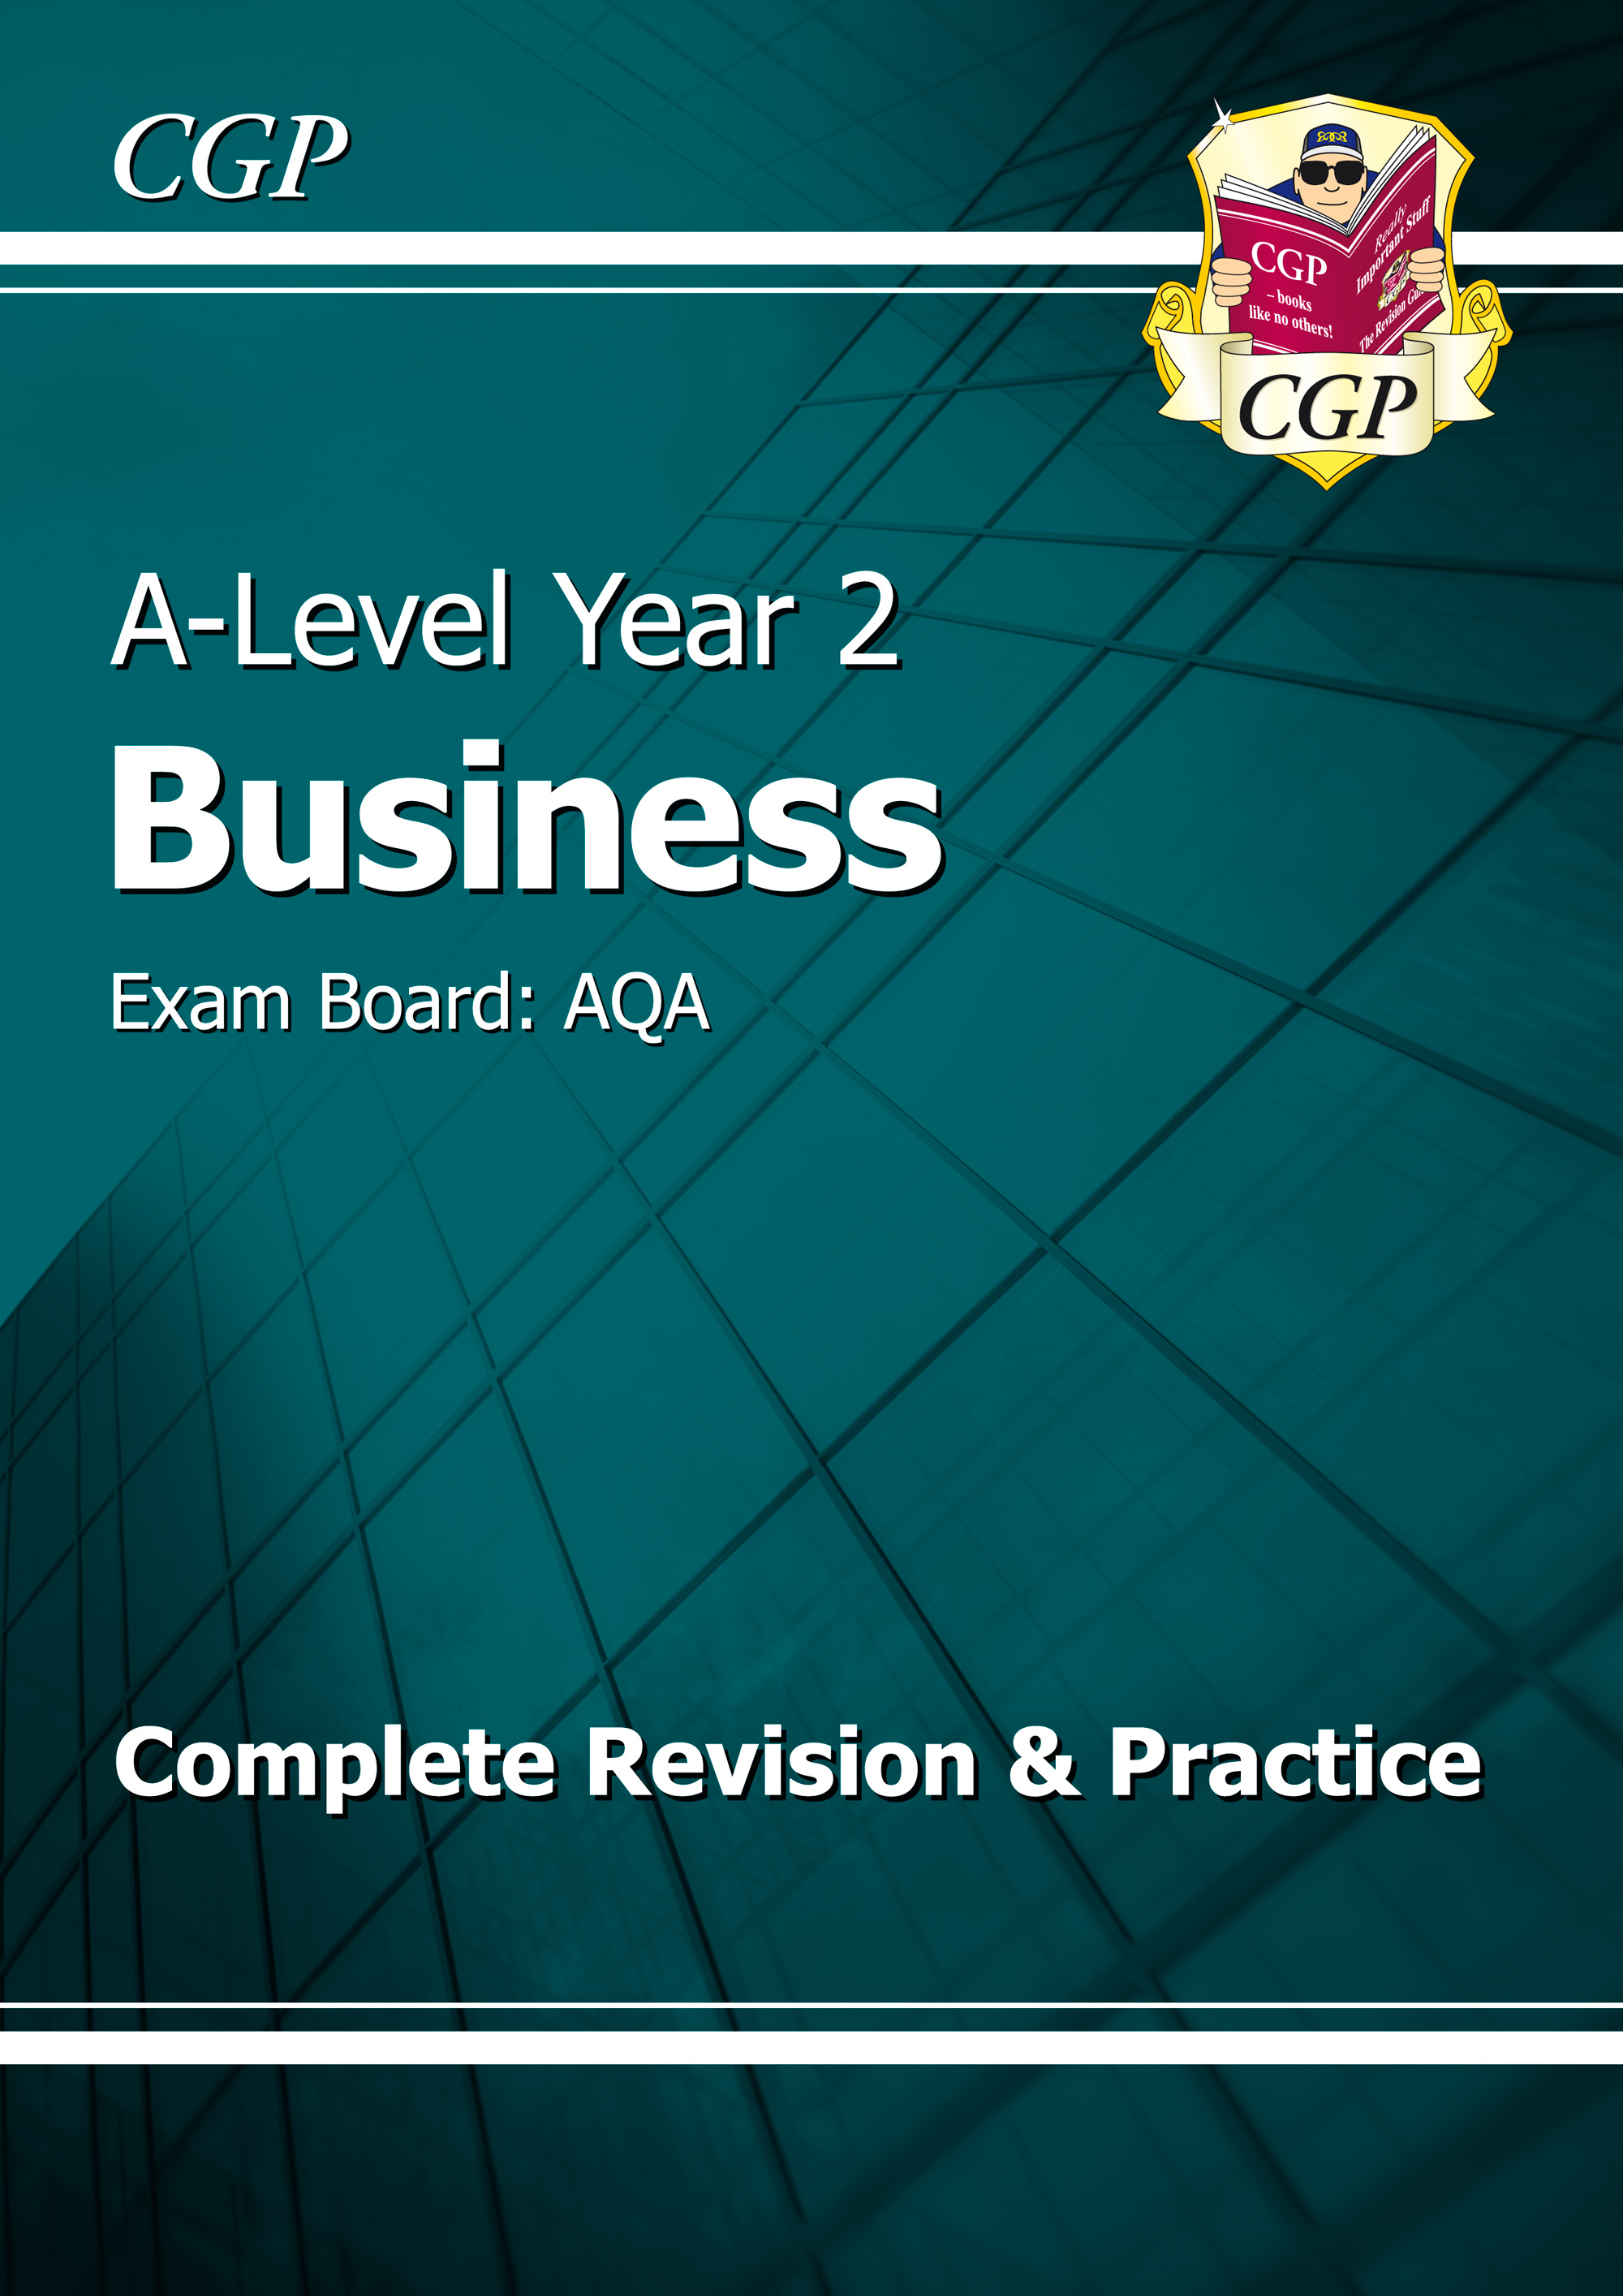 BUAR63 - A-Level Business: AQA Year 2 Complete Revision & Practice